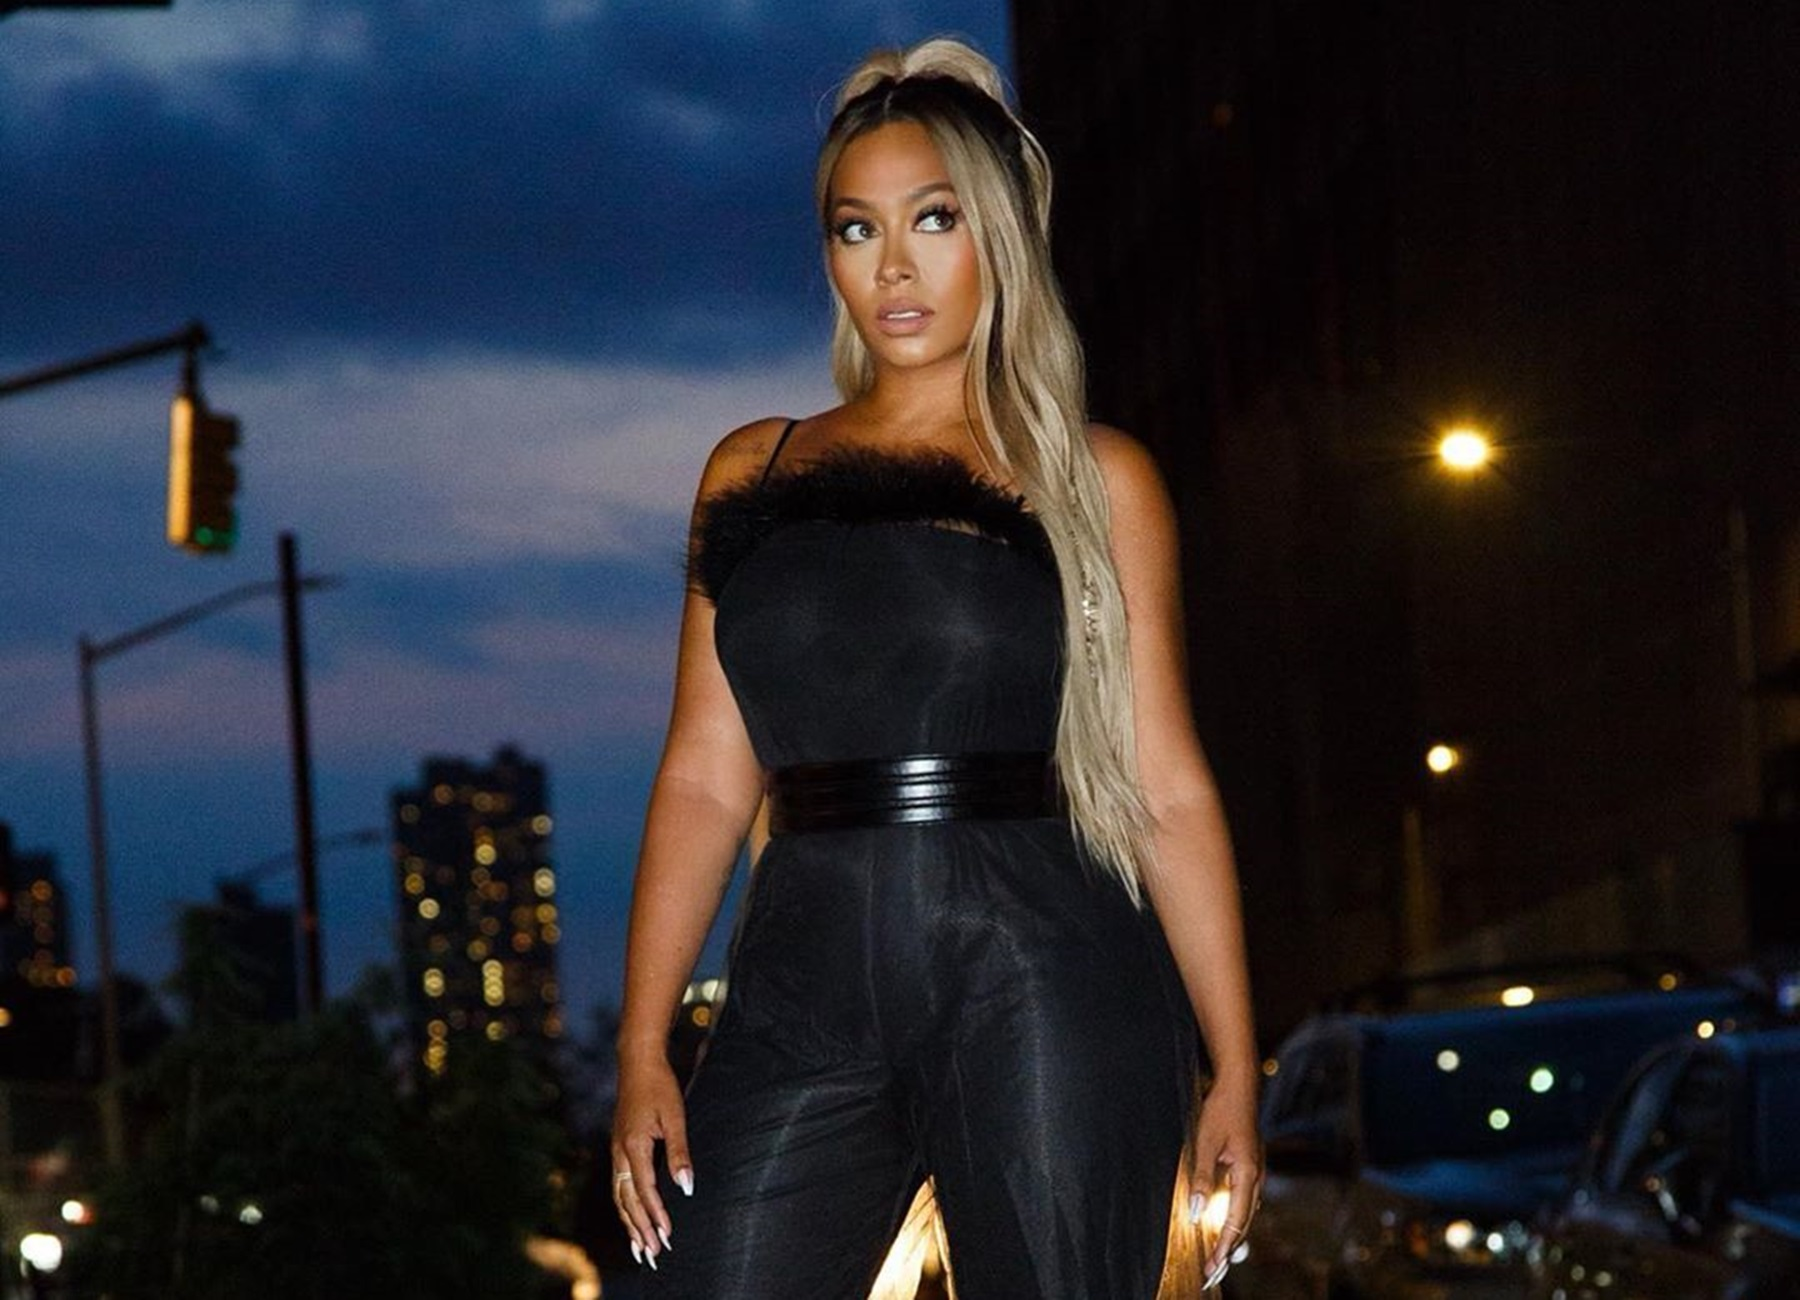 La La Anthony Looks Stunning In Sheer Black Outfit